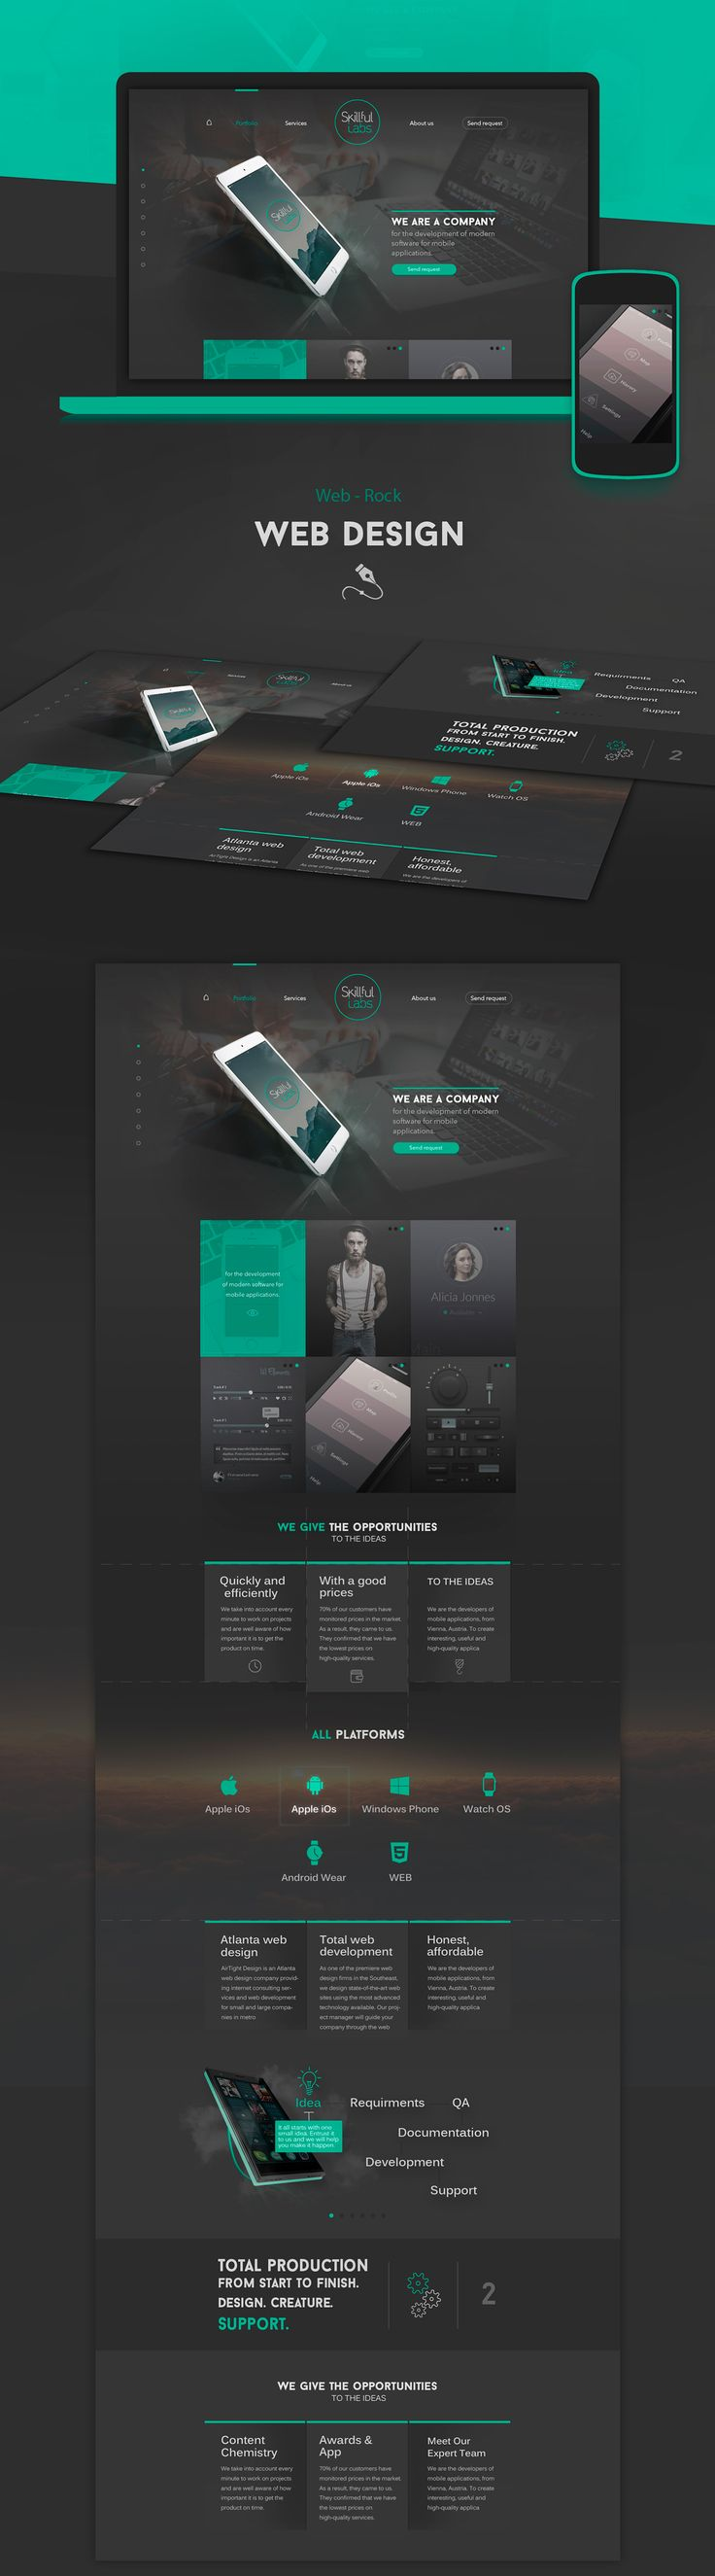 Website Design Ideas web design ideas jump ahead of your competition web site design great website design ideas Landing Page Design Web Design Ideas